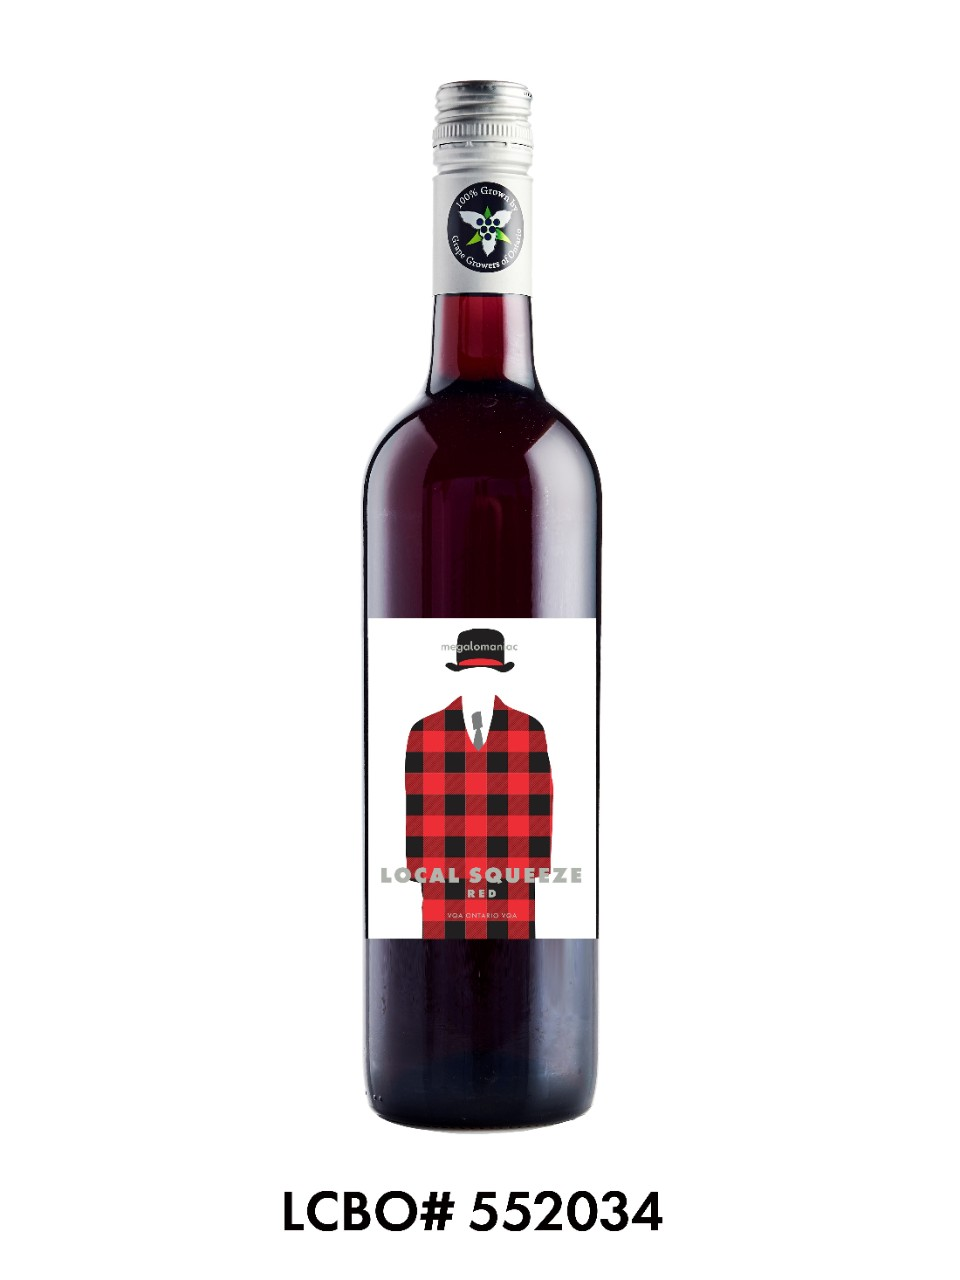 Image for Megalomaniac Local Squeeze Red from LCBO